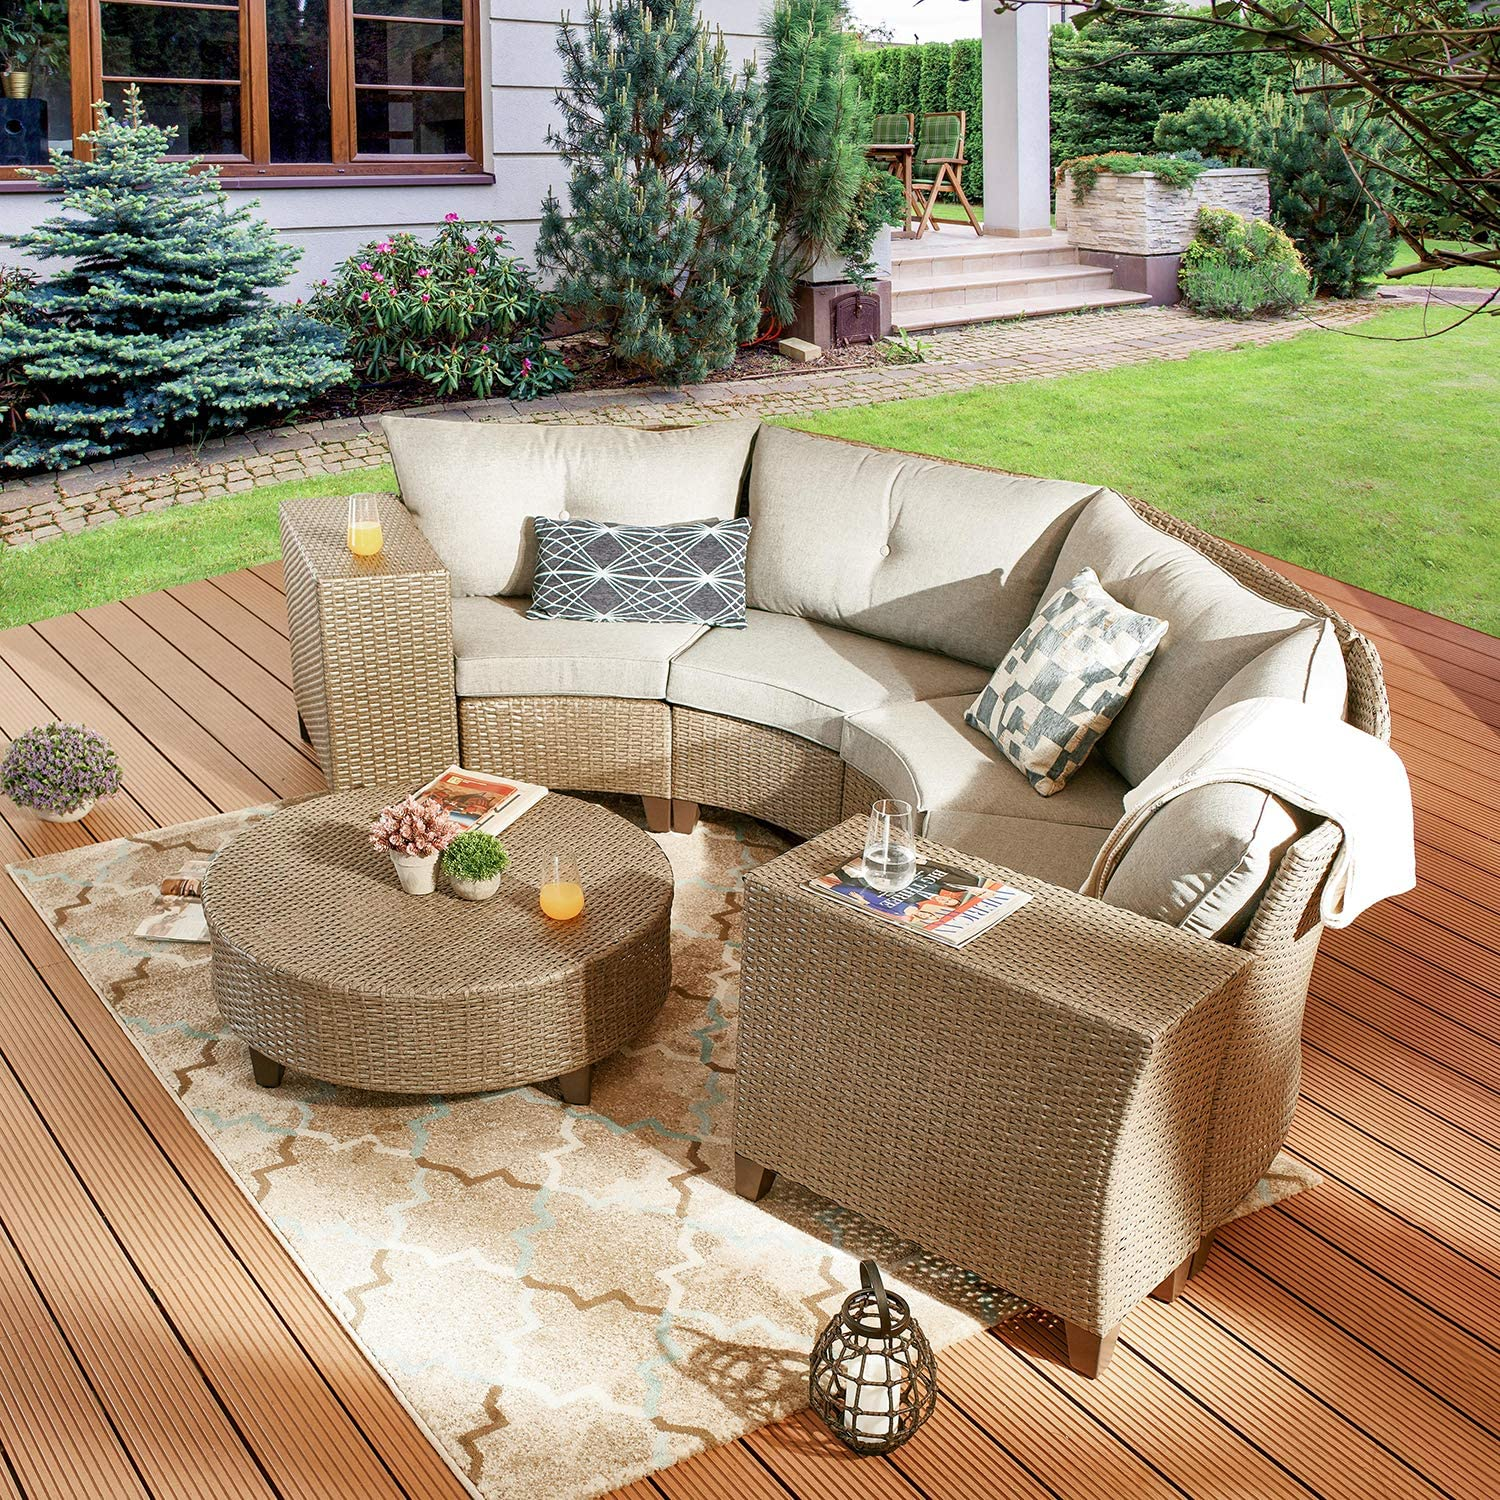 Festival Depot 7-Piece Patio Furniture Outdoor Sectional Half-Moon Conversation Set All-Weather Sofa for Porch Lawn Garden Balcony Pool Backyard with Thick Grey Cushions, Brown